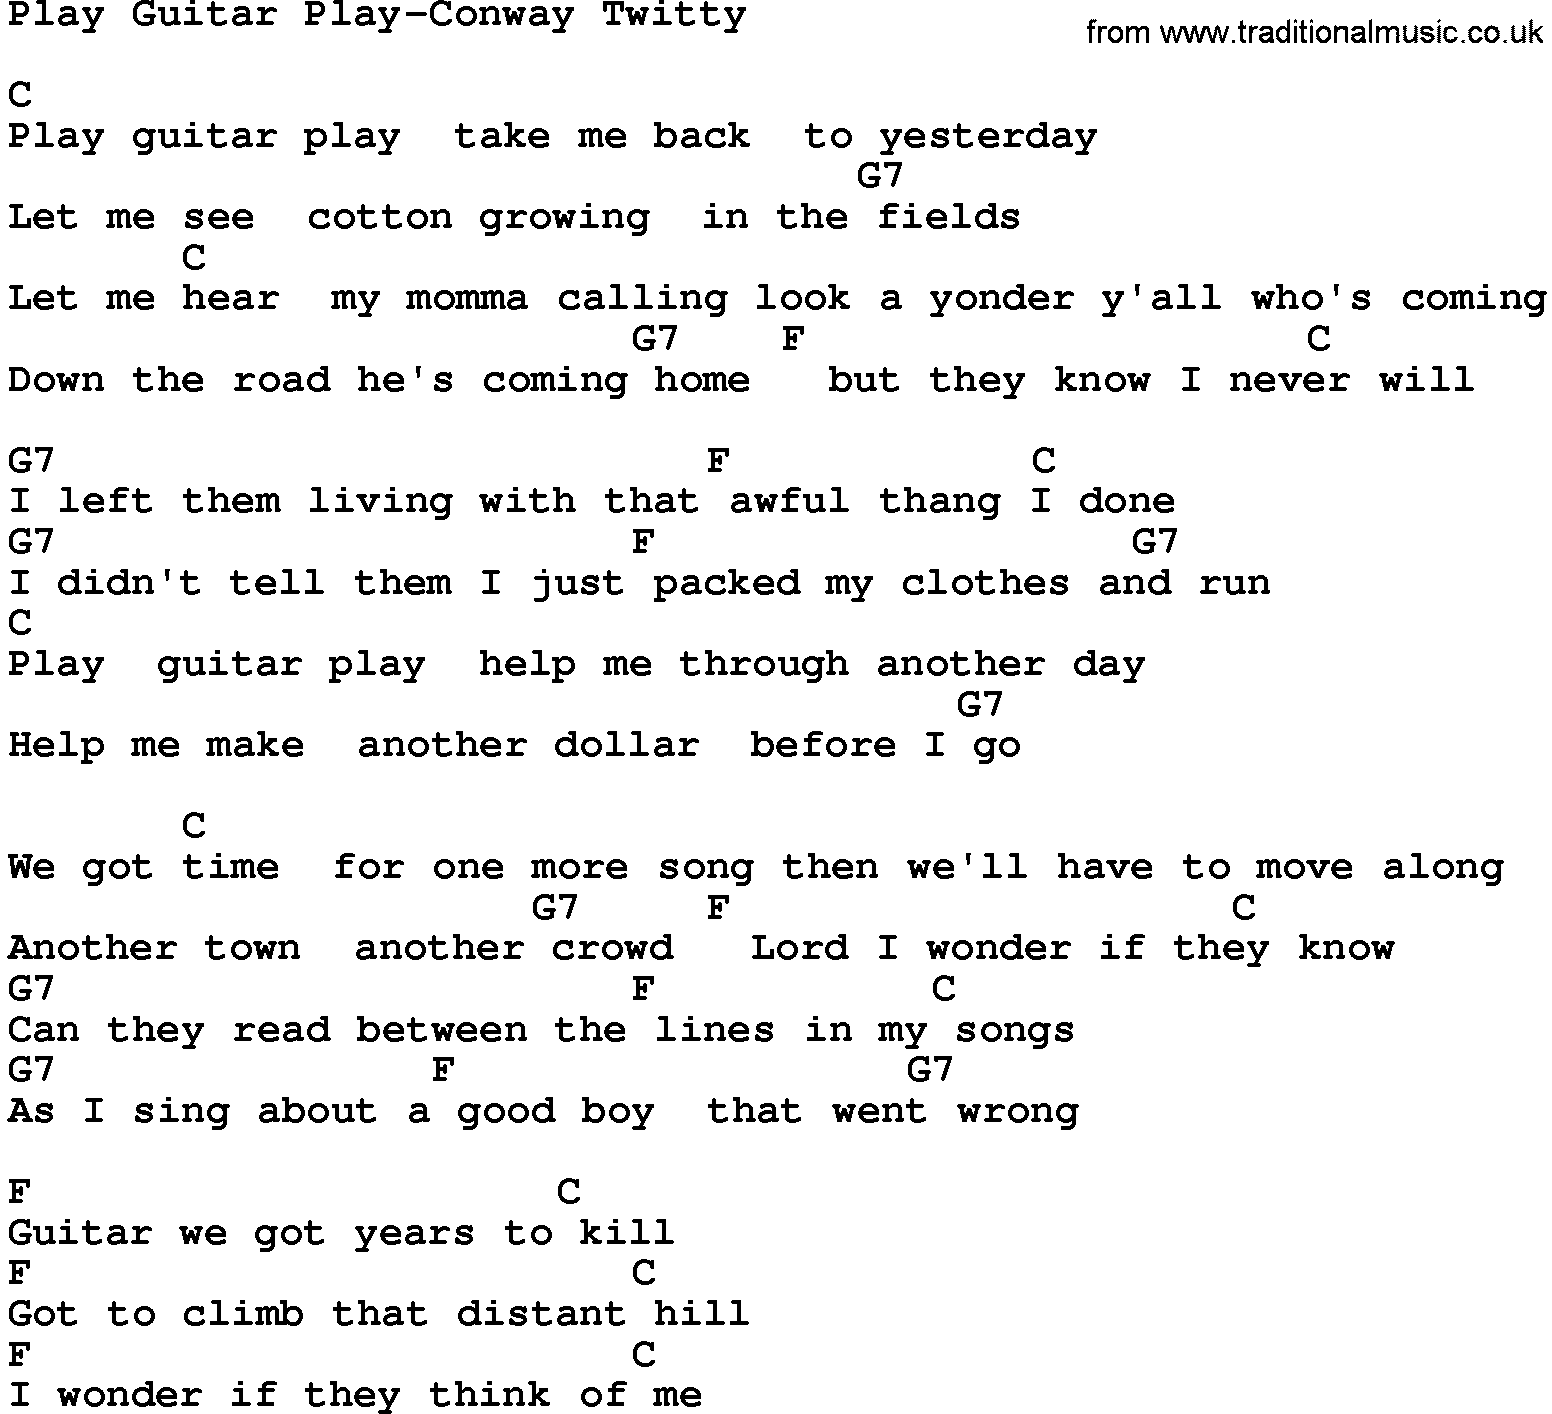 Country musicplay guitar play conway twitty lyrics and chords ccuart Choice Image